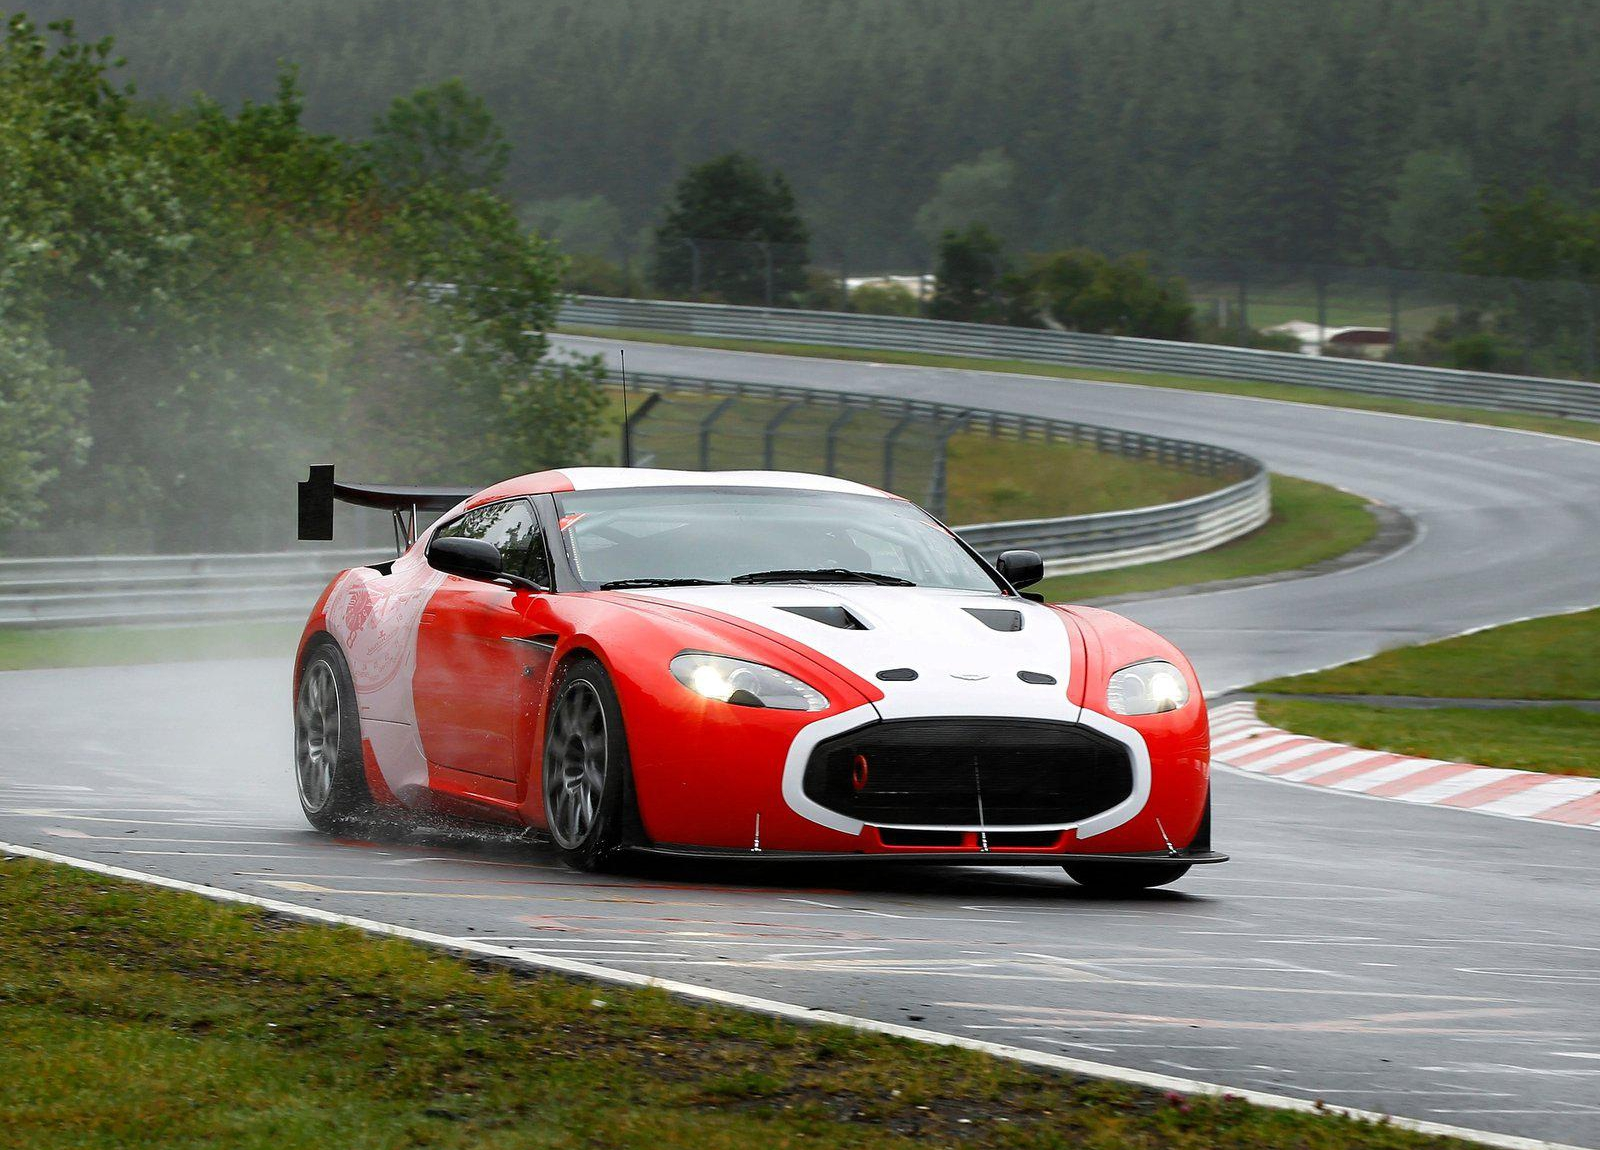 2011 Aston Martin V12 Zagato Racecar photo - 1